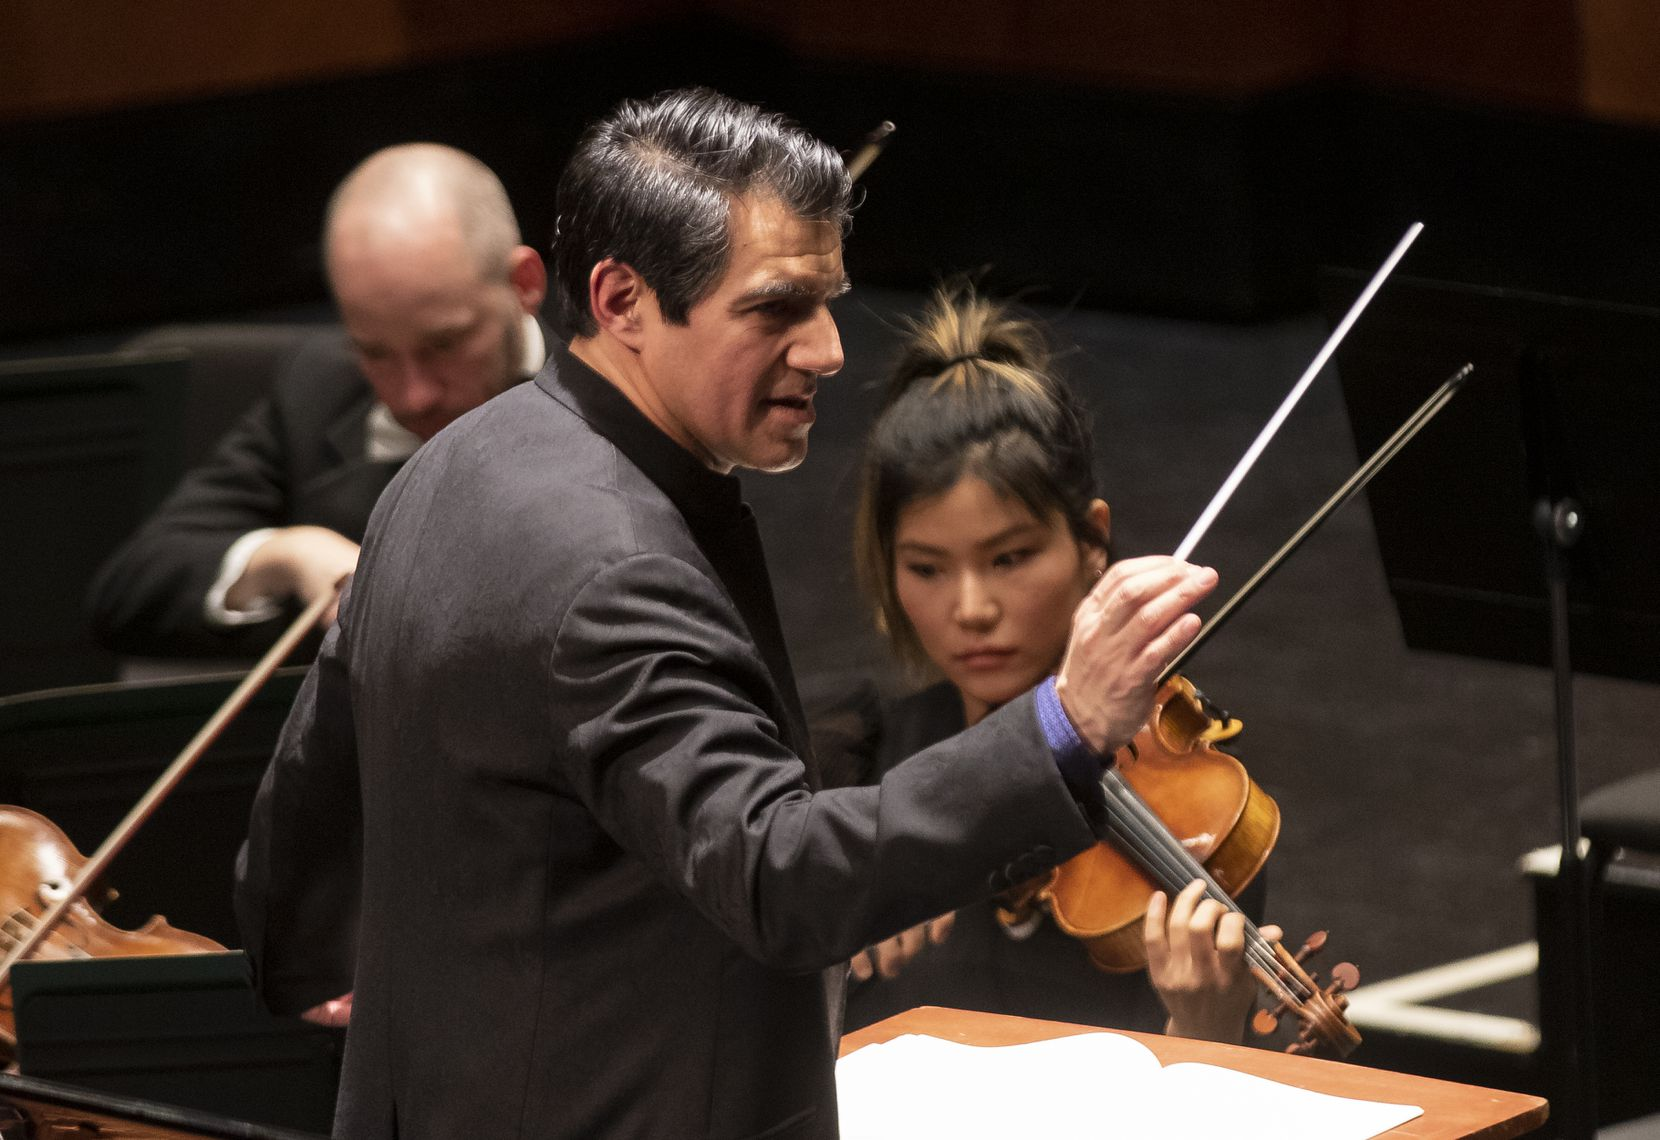 Miguel Harth-Beyodya conducts the Fort Worth Symphony Orchestra in Beethoven's Concerto No. 2 in C Major, op. 19, with pianist Joyce Yang, during the Cliburn concert series at Bass Performance Hall on Jan. 4, 2020 in Fort Worth.